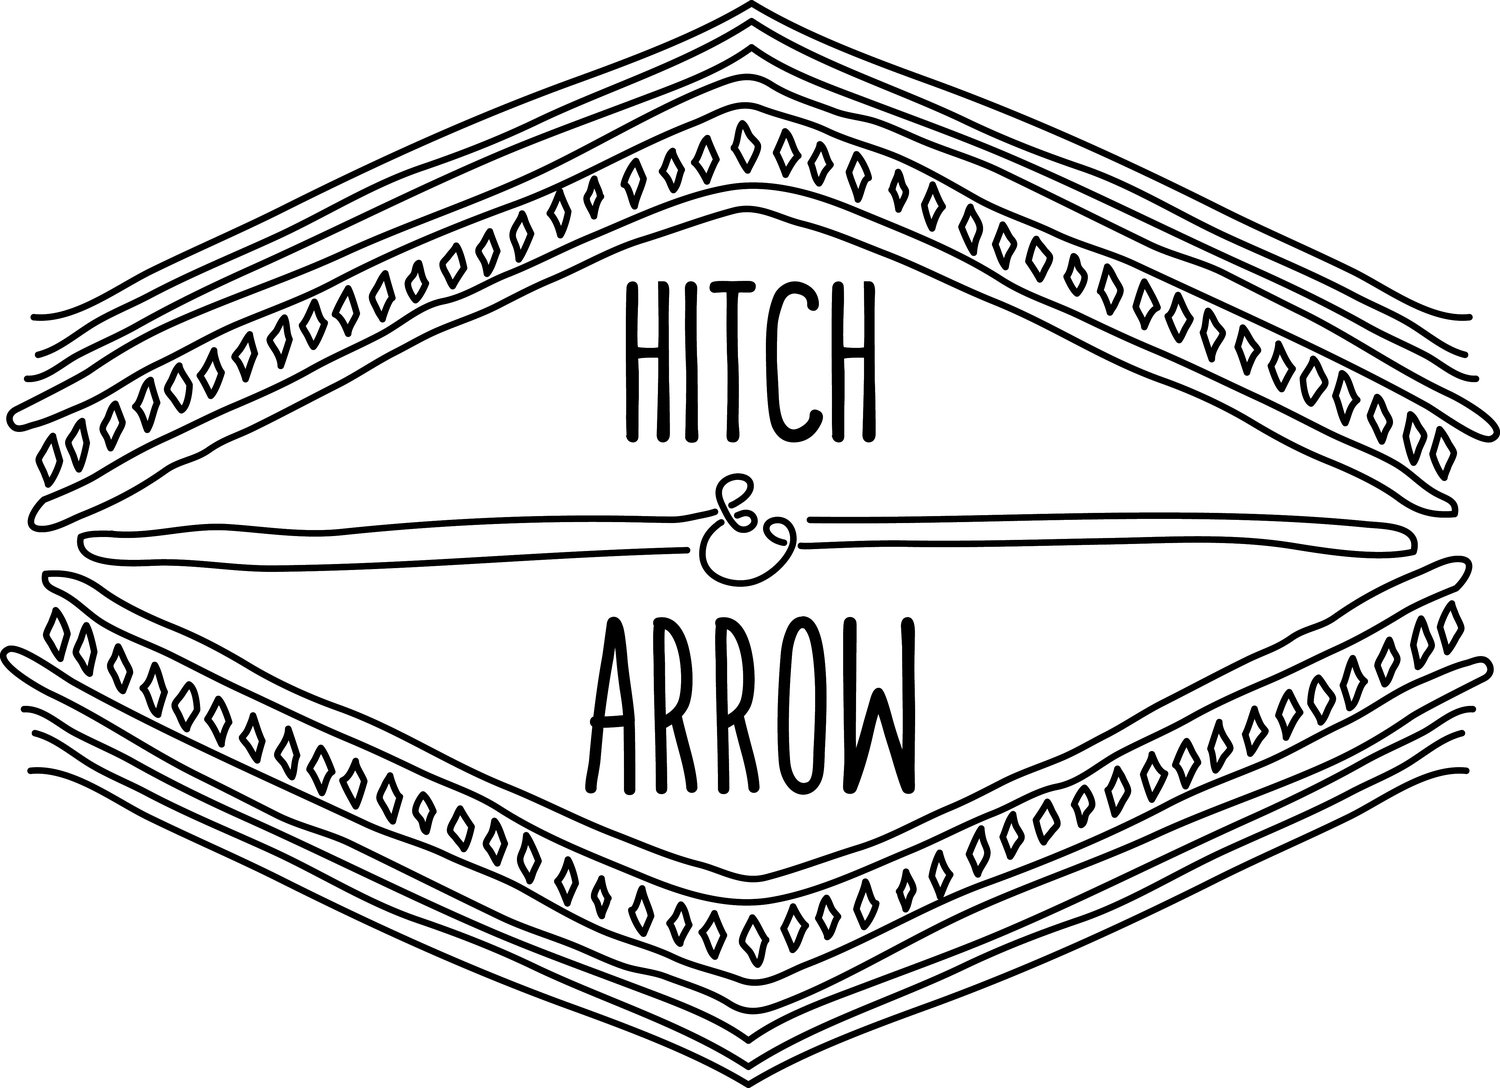 Hitch and Arrow